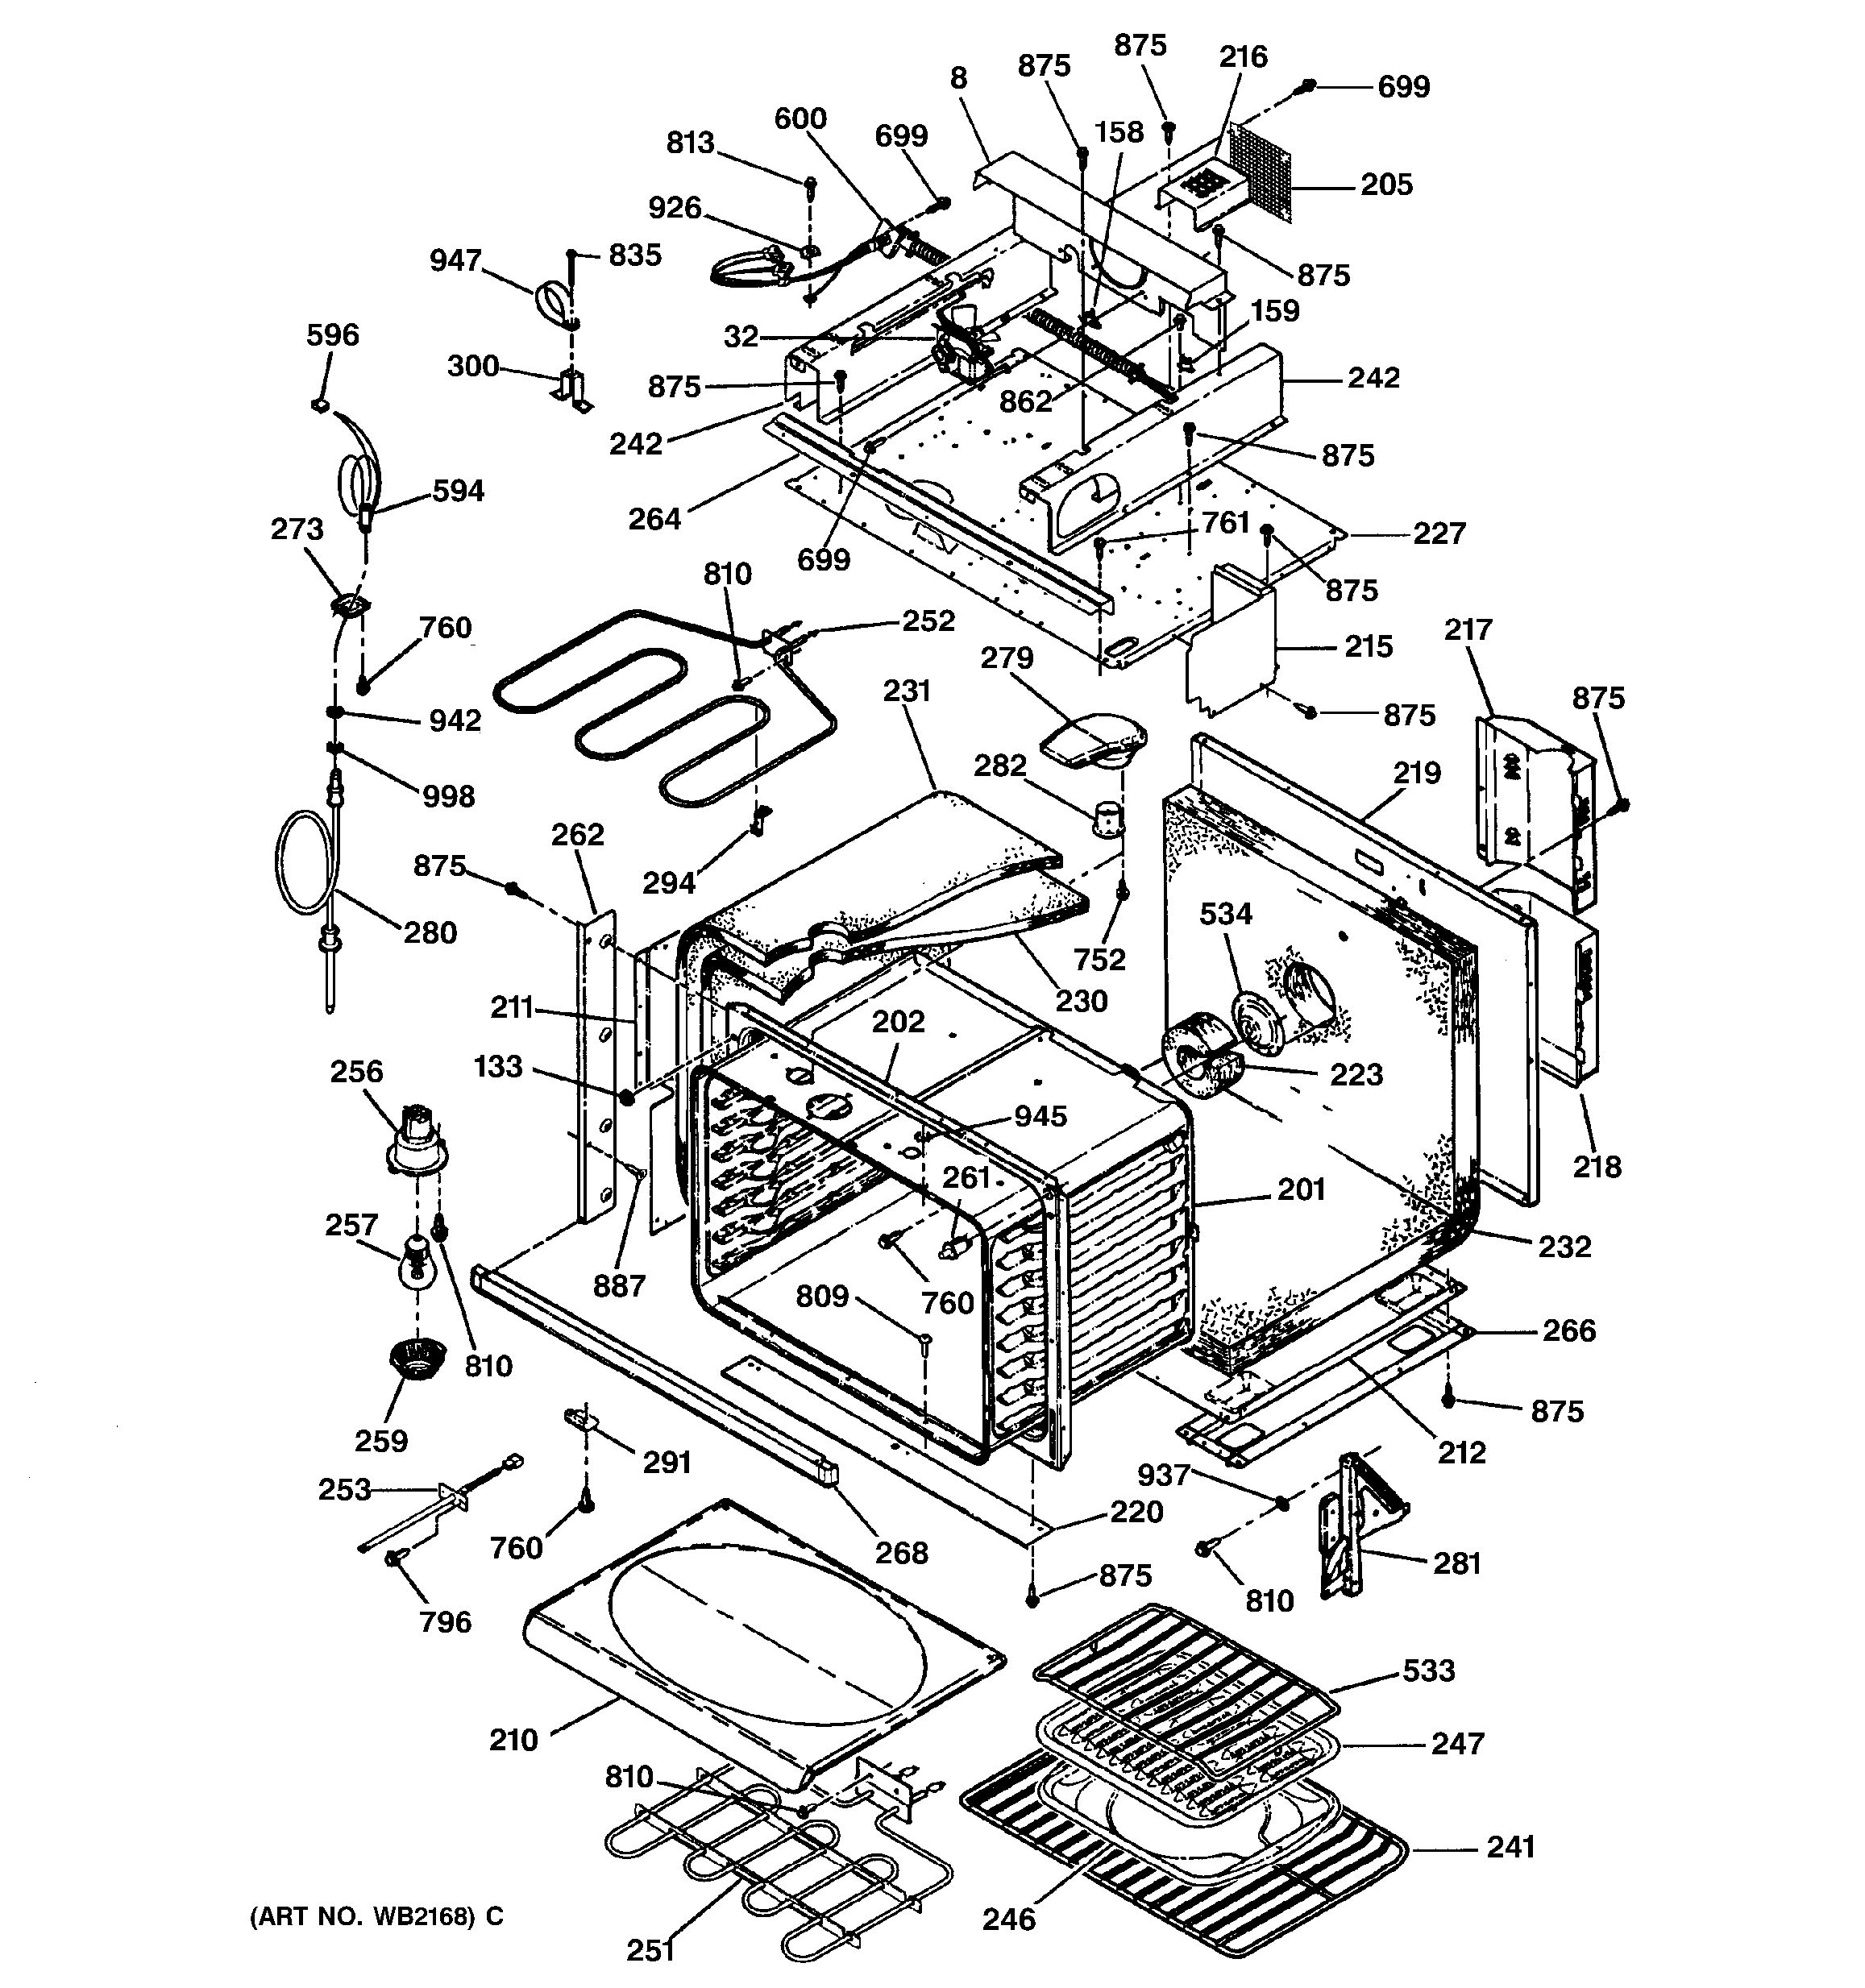 Assembly View For Oven Body Parts